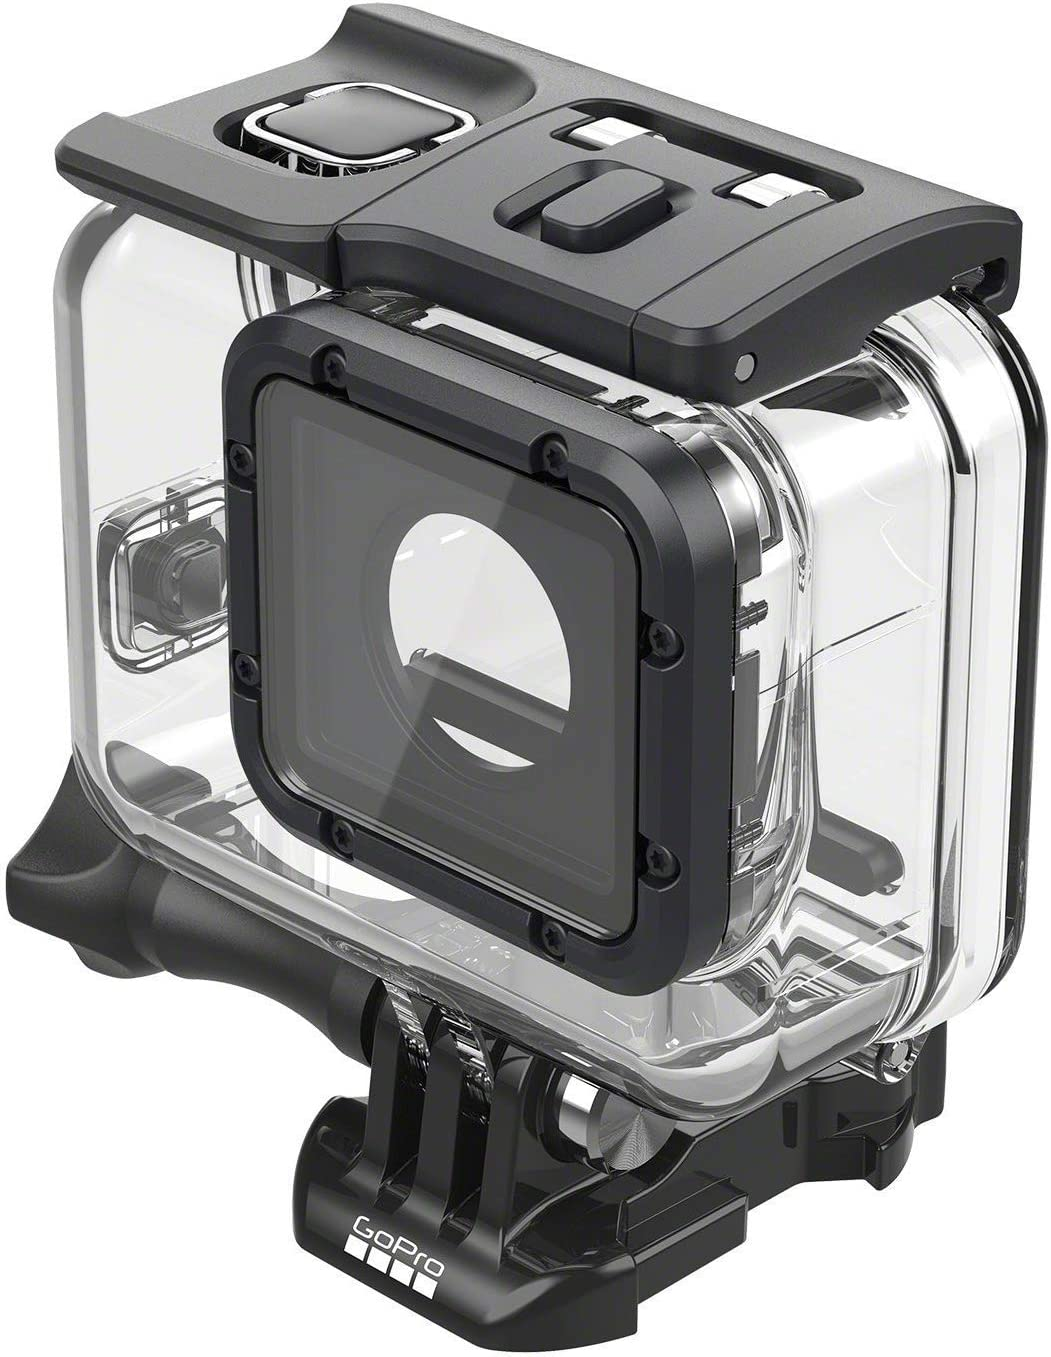 HERO5 Black HERO7 Black VKeyueDa VKeyueDa 45m Waterproof Housing Protective Case with Buckle Basic Mount /& Screw for GoPro HERO6 Black